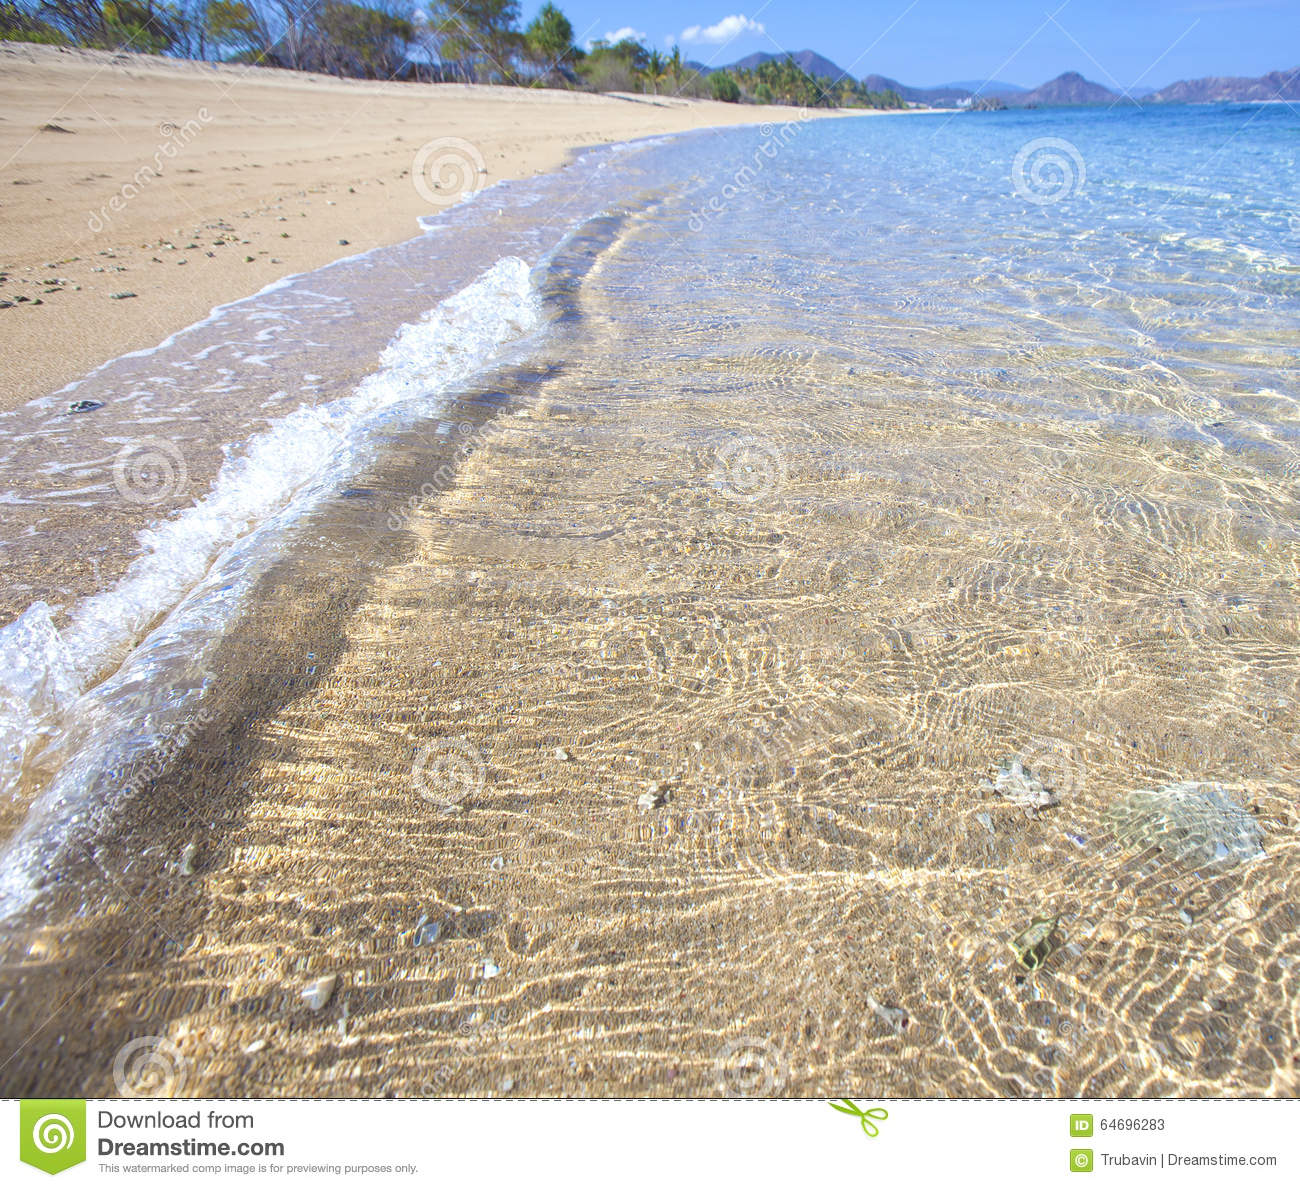 Tropical Beach And Peaceful Ocean: Tropical Beach Stock Image. Image Of Beauty, Paradise